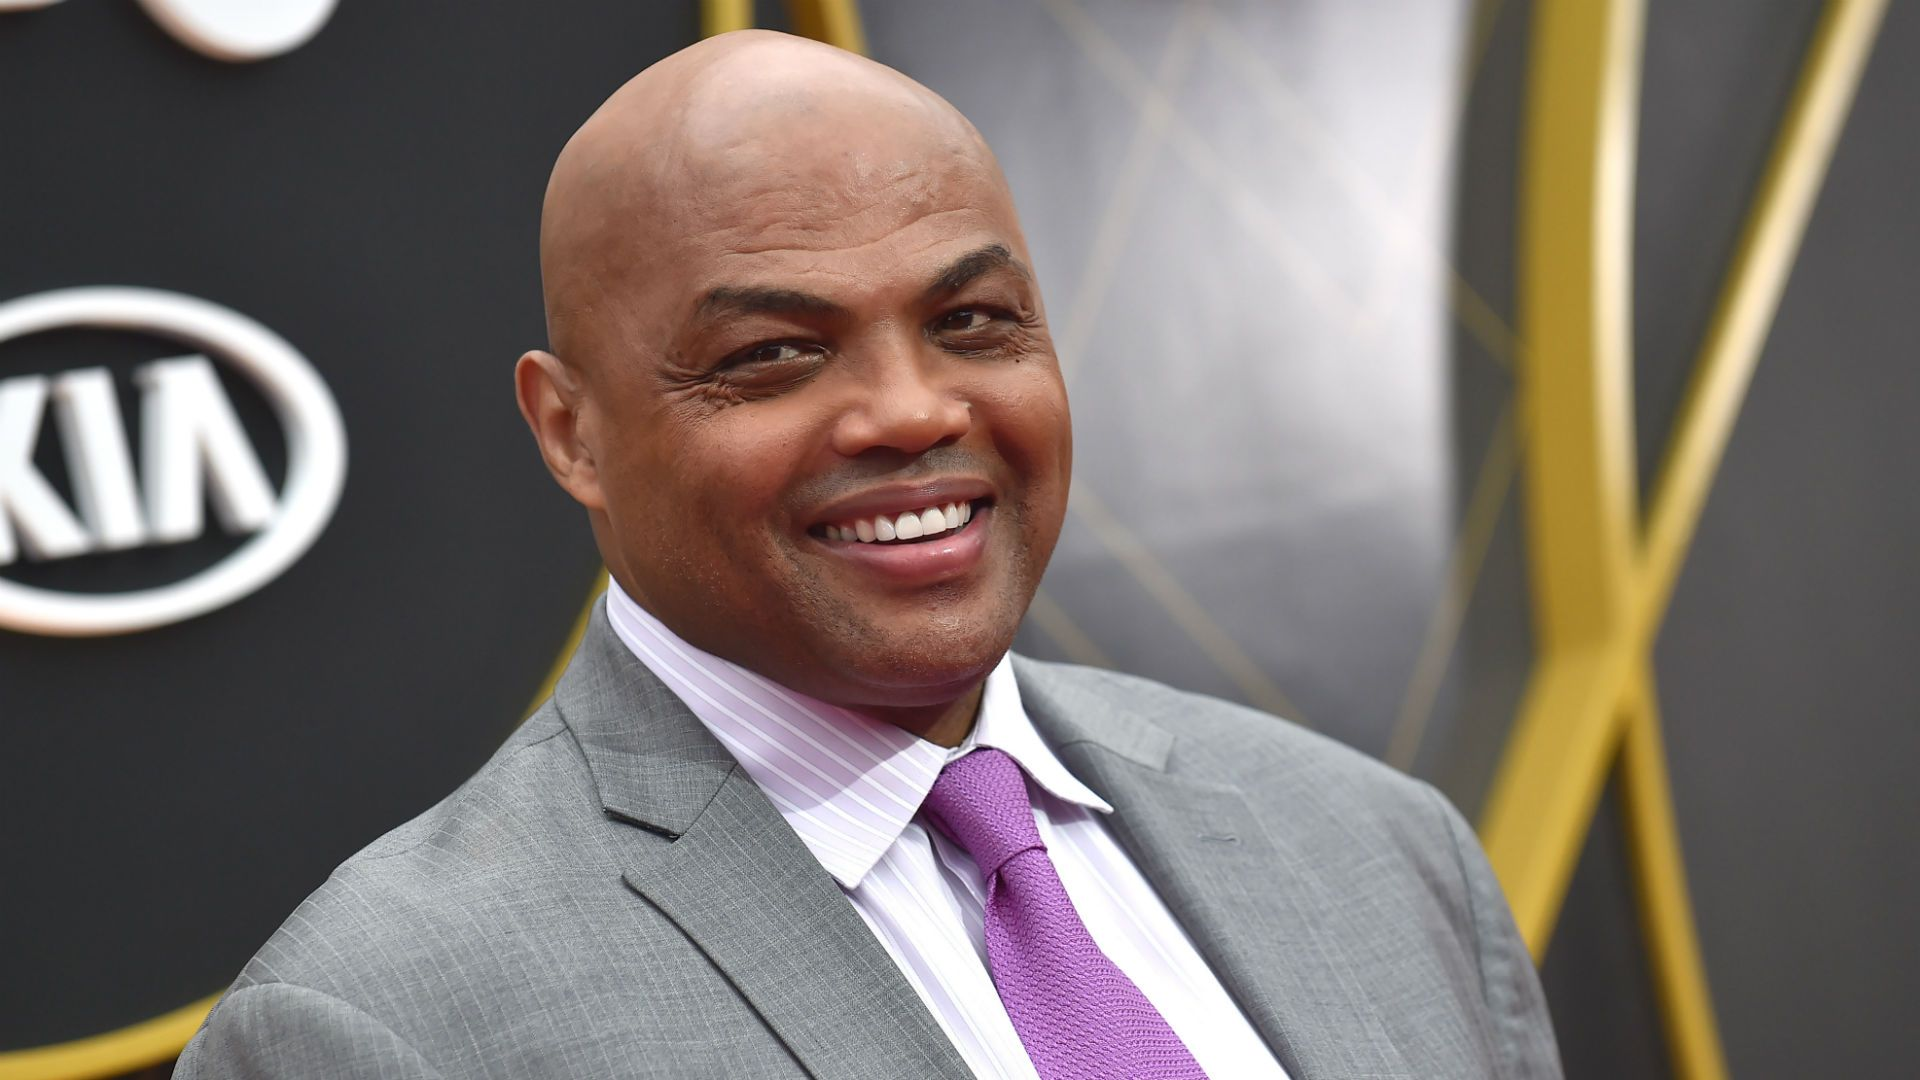 Charles Barkley Fires Back At Draymond Green Calls Him Least Famous Person In The Boy Band National Basketball Association News In 2020 Charles Barkley National Basketball Association Basketball Association